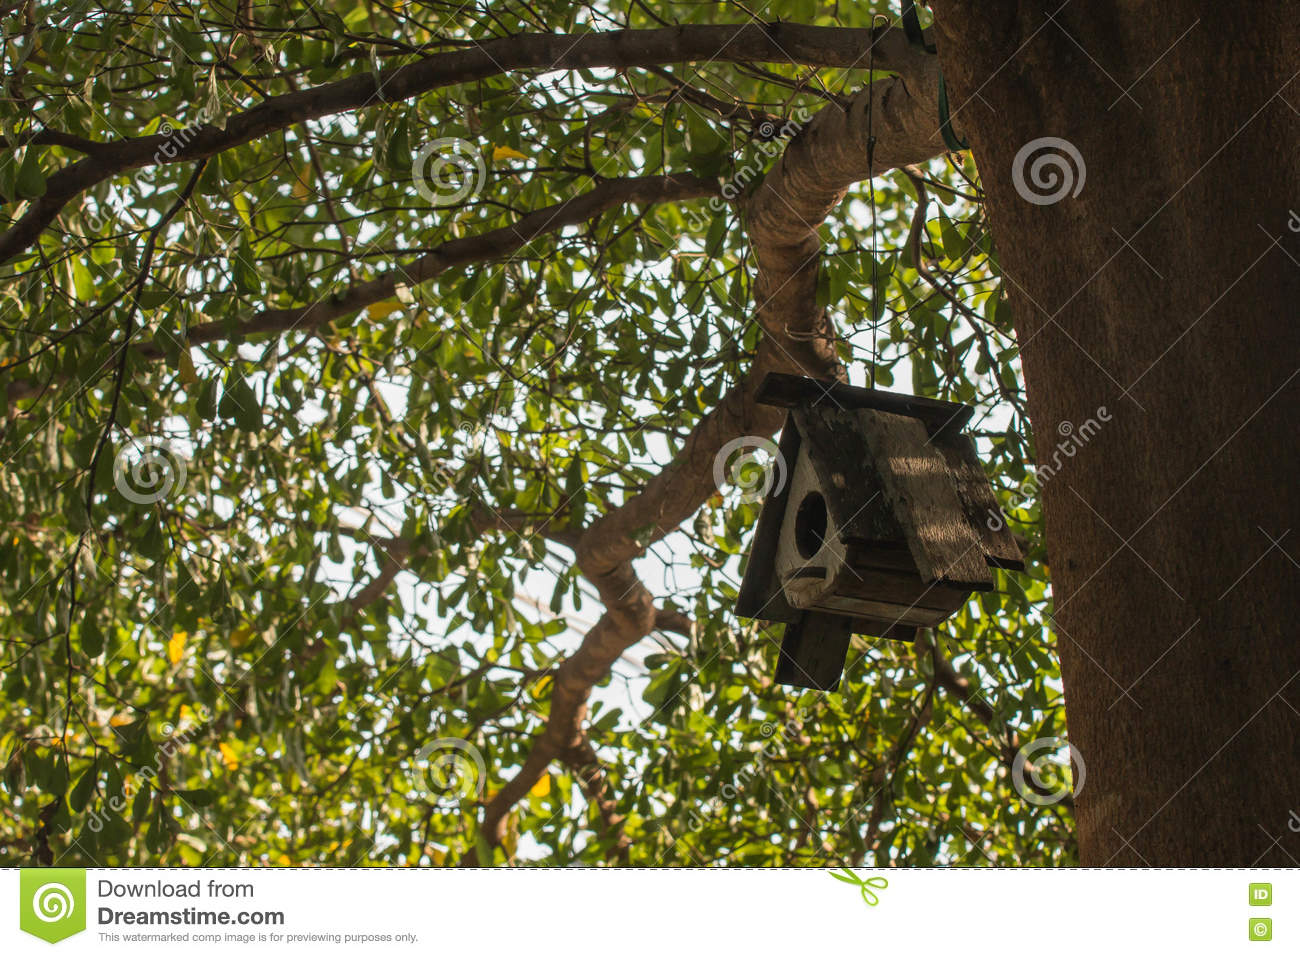 Hanging Tree House Bird House Hanging From The Tree With The Entrance Hole In The